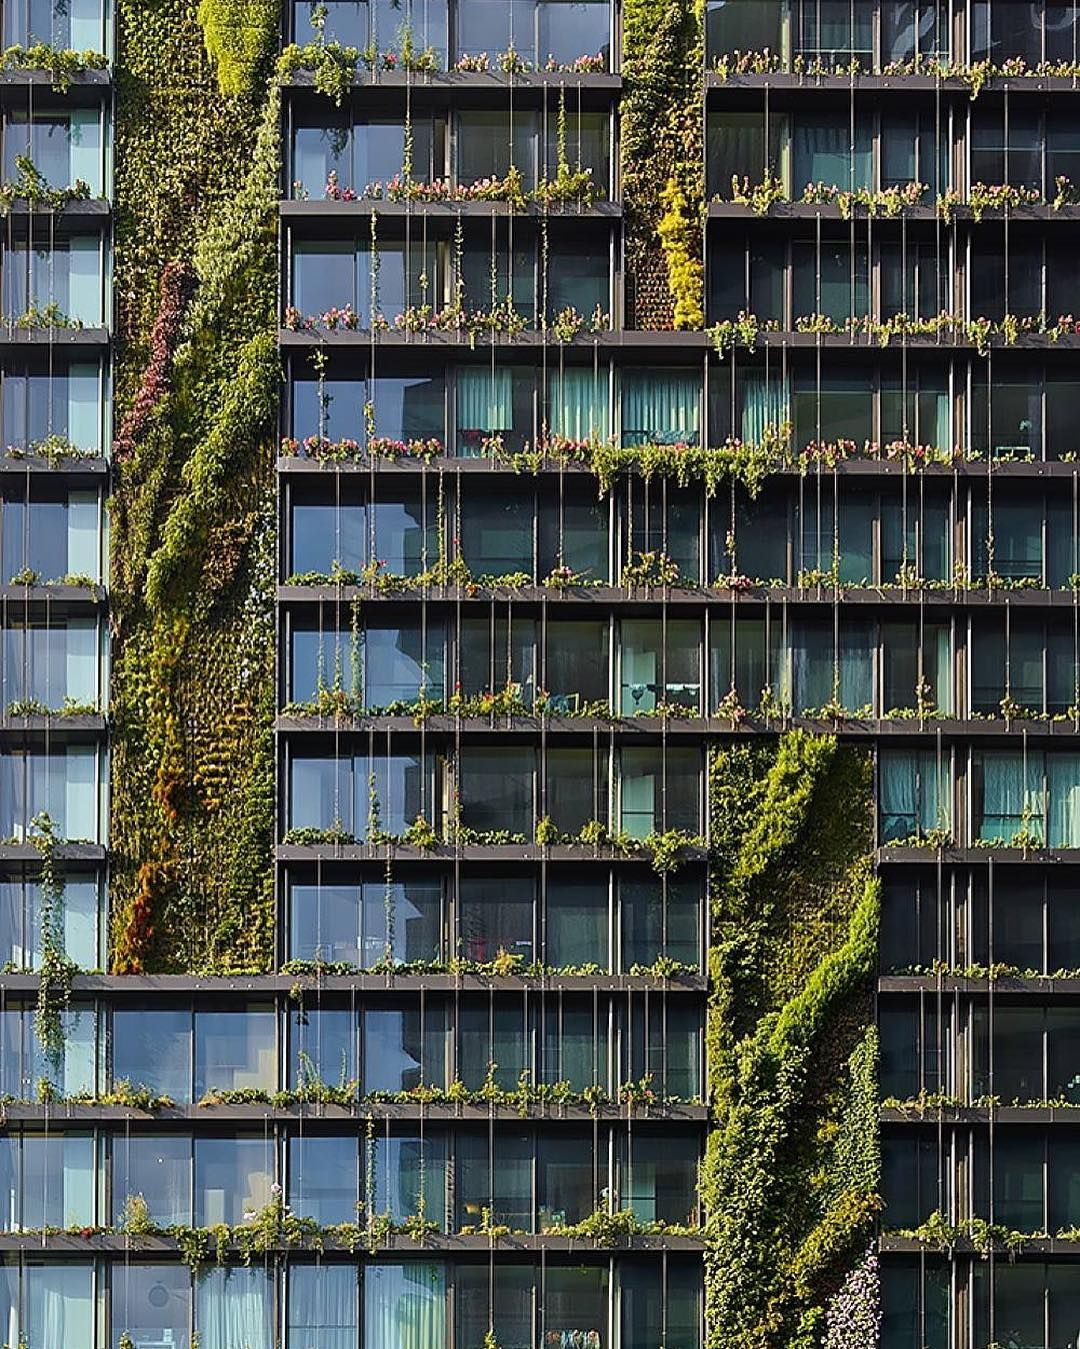 One Central Park is a new sustainable housing complex designed by Atelier Jean Nouvel and PTW Architects in partnership with botanist Patrick Blanc.  One Central Park consists of two towers joined by a base containing shops near Sydney harbour.  Photographer: Murray Fredericks  #Sydney  #Australia  www.facebook.com/amazingarchitecture ✔️ #amazingarchitecture  #architecture  Telegram.me/amazingarchitecture ✔️ #design  #contemporary  #architecten #nofilter #architect #arquitectura  #iphoneonly…